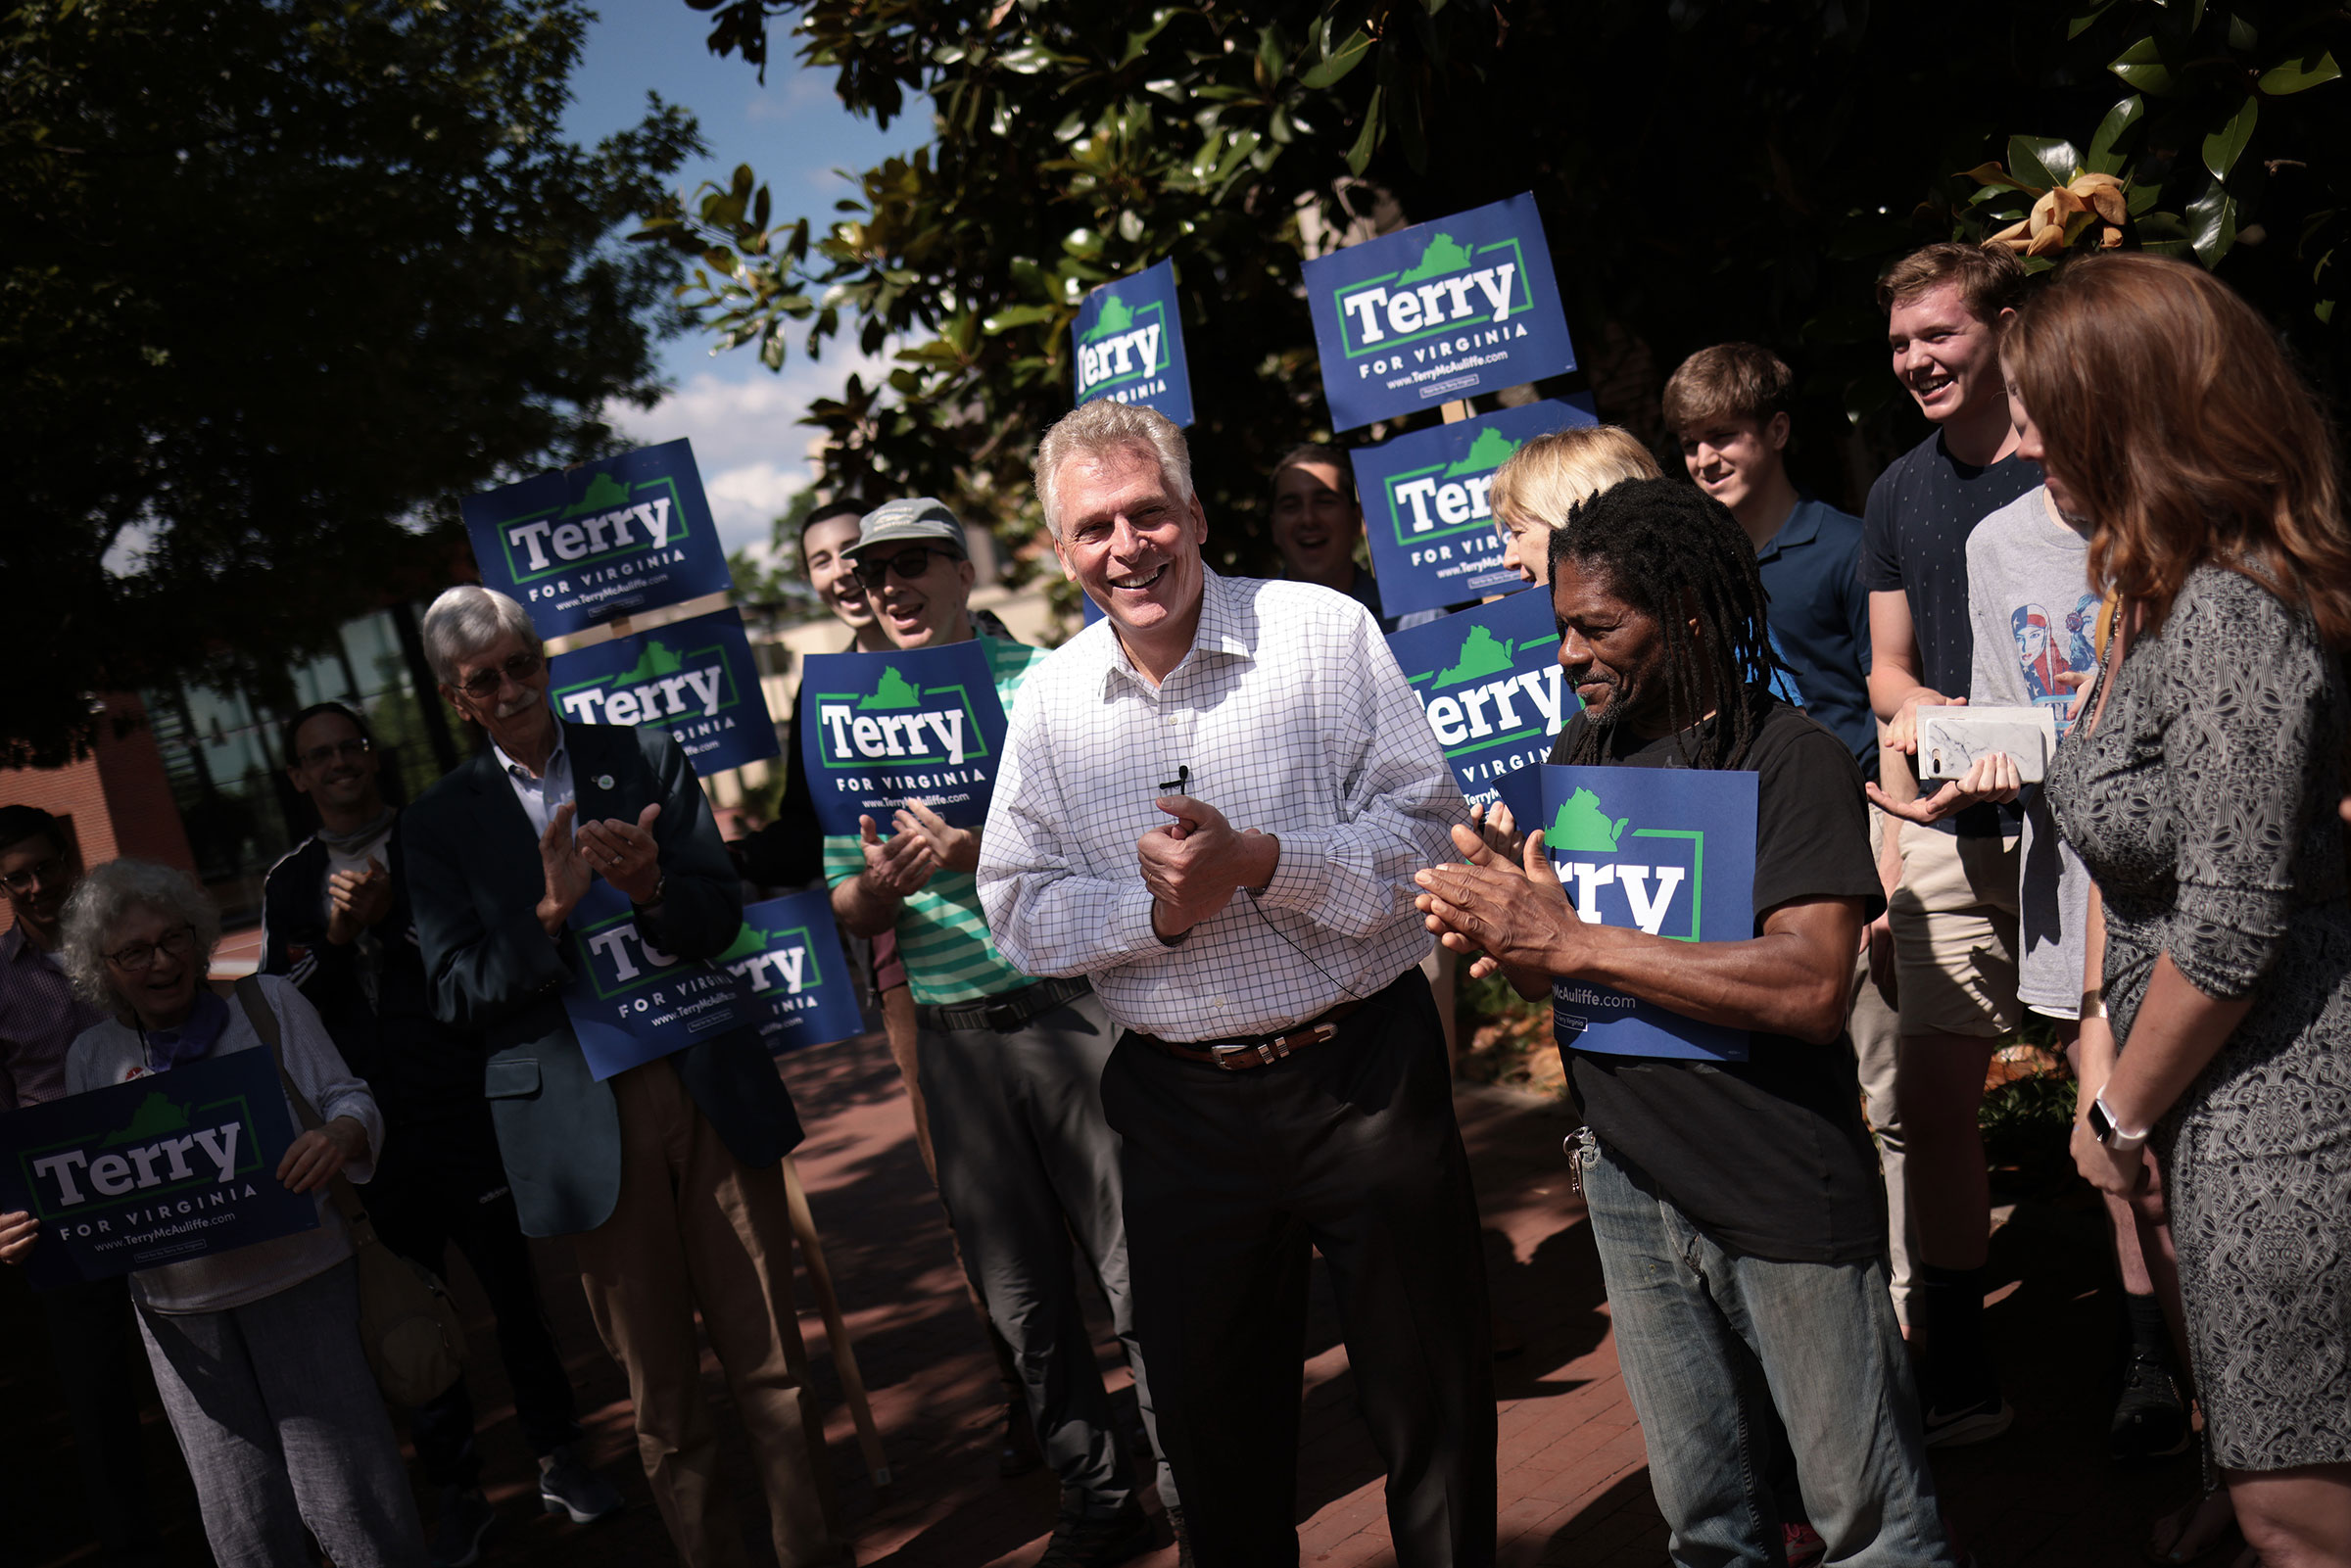 Former Virginia Gov. Terry McAuliffe speaks to supporters while campaigning in Charlottesville, Va. on June 4, 2021.